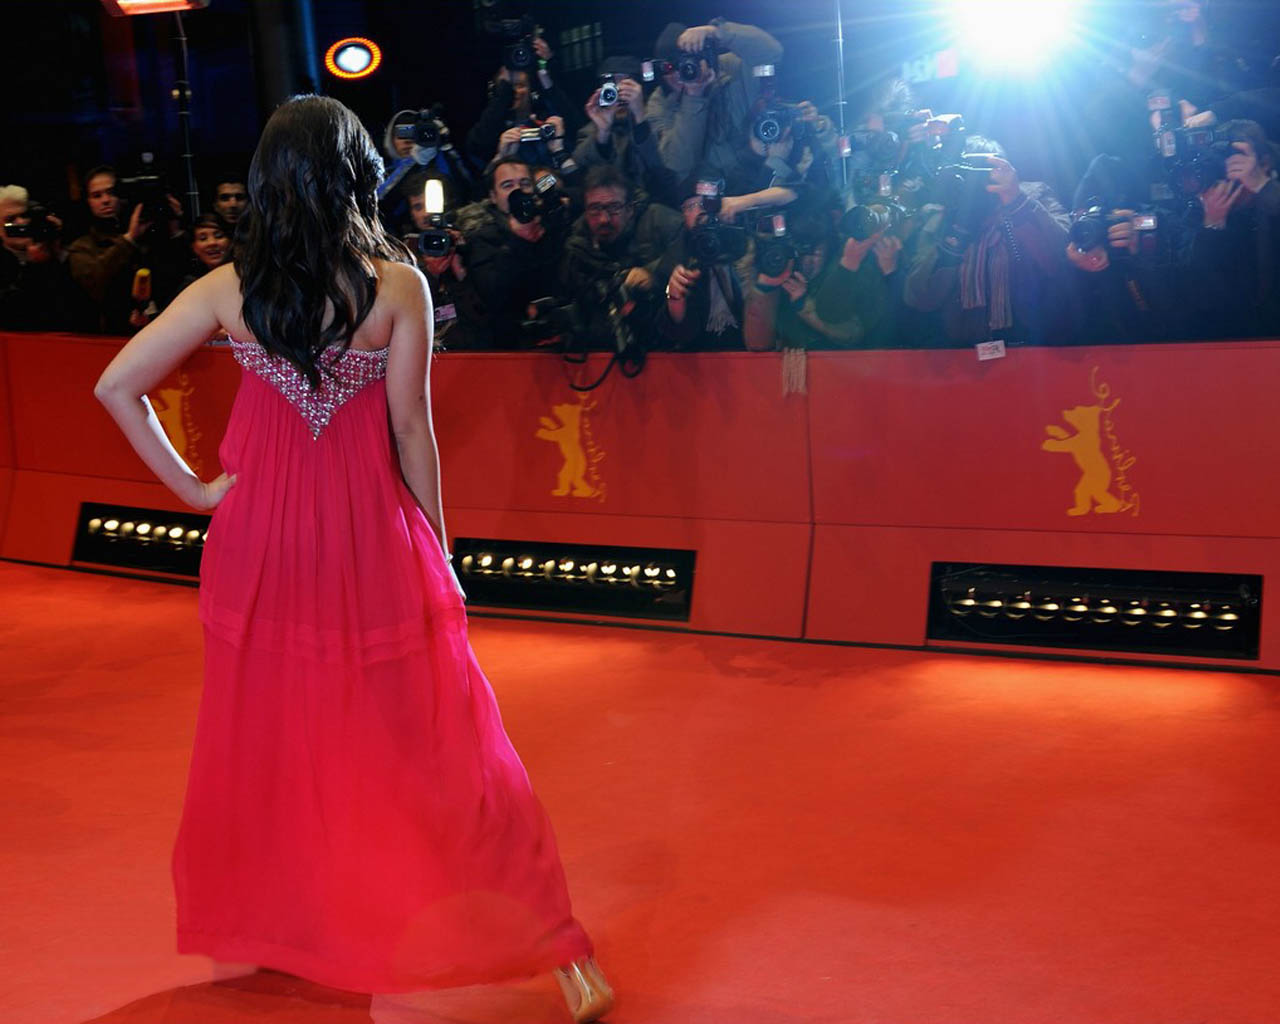 Red Carpet Wallpaper   Hd Wallpaper Background 1280x1024